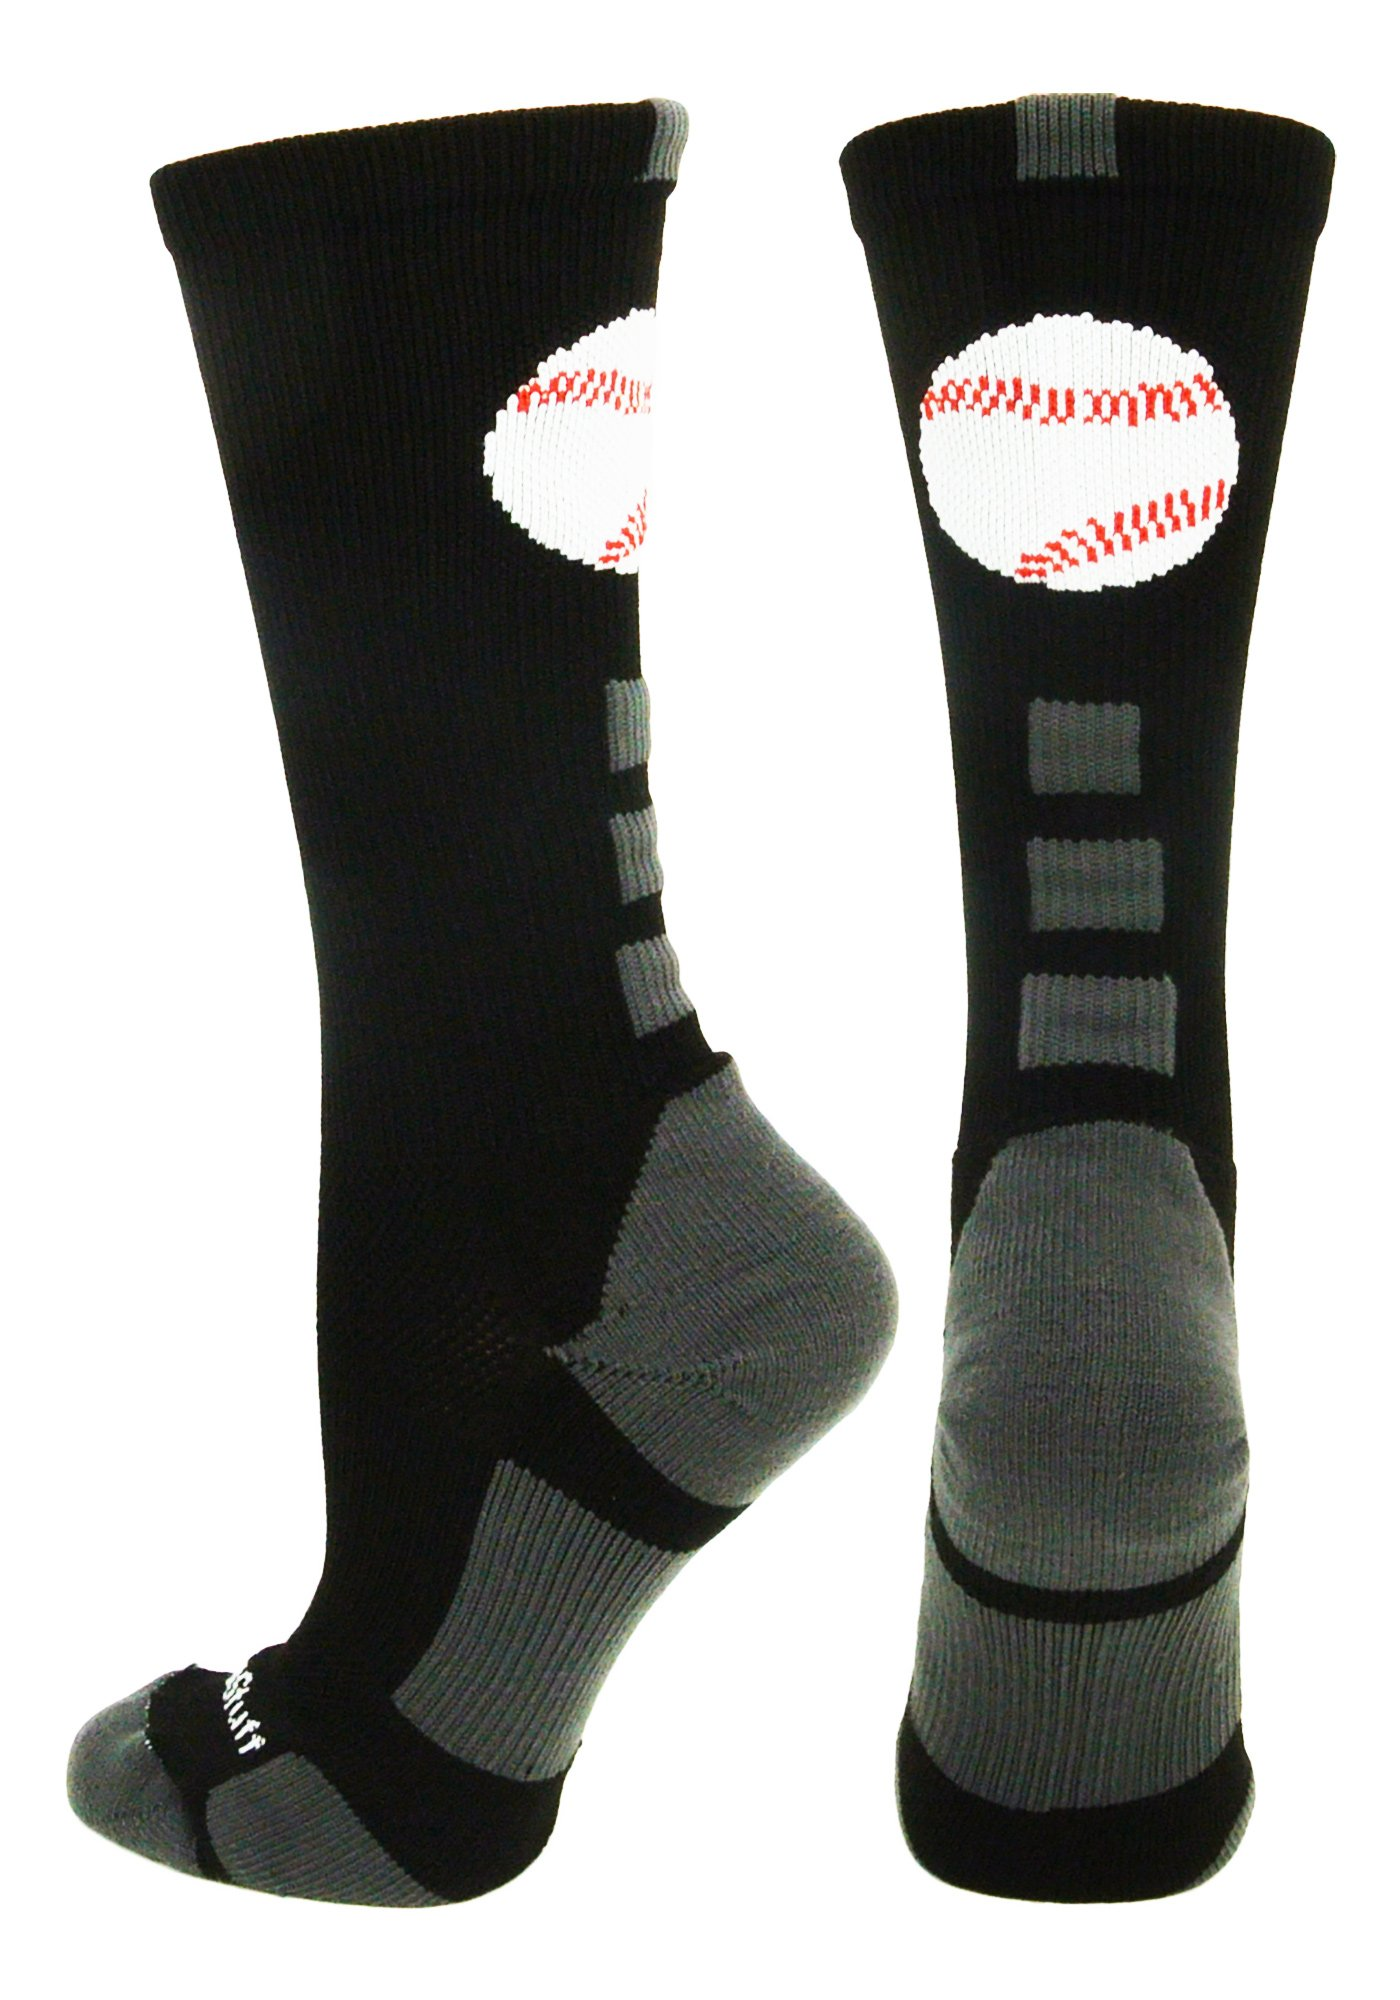 MadSportsStuff Baseball Logo Crew Socks (Black/Graphite, Small) by MadSportsStuff